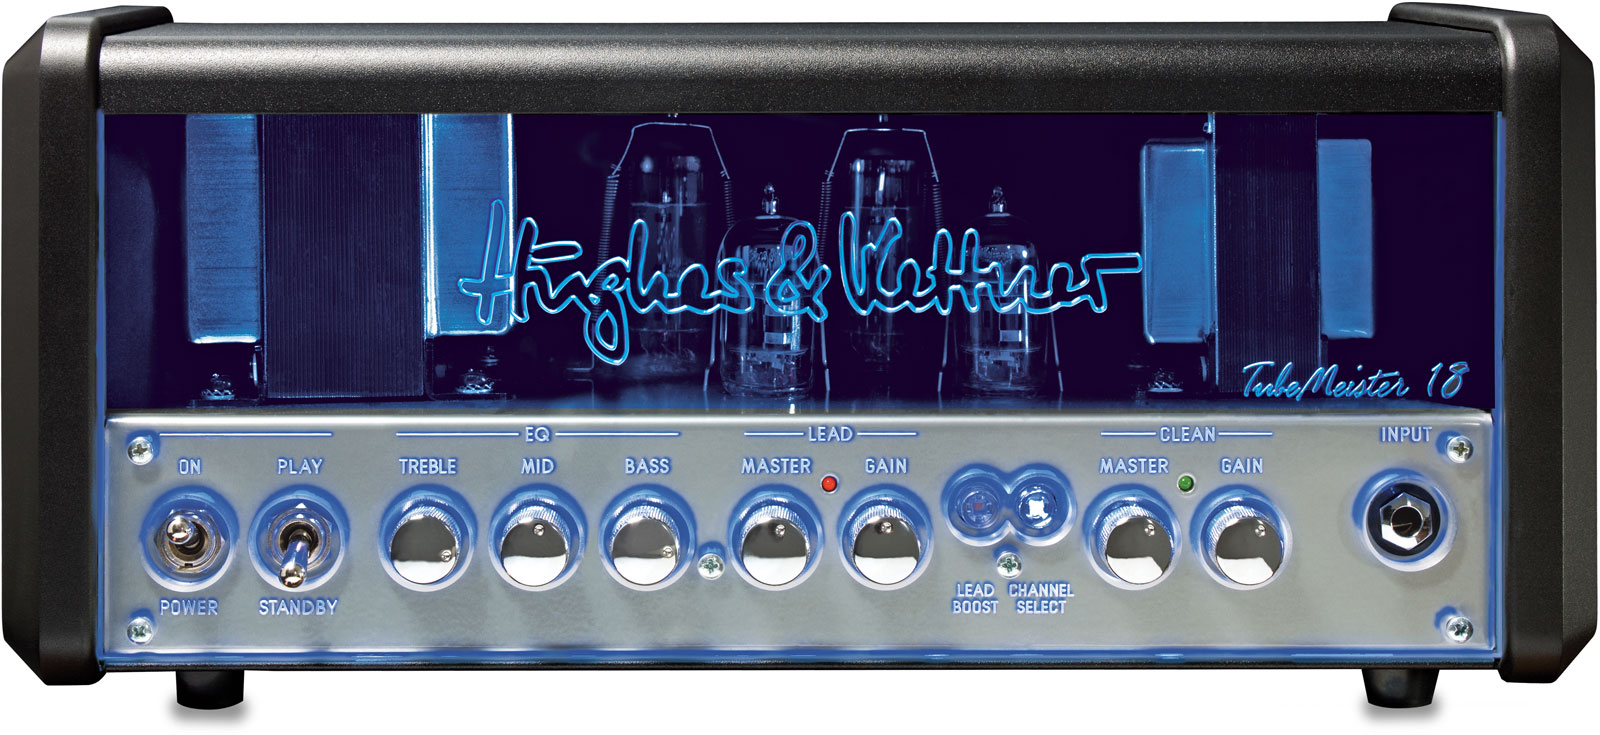 hughes and kettner tubemeister 18 combo review